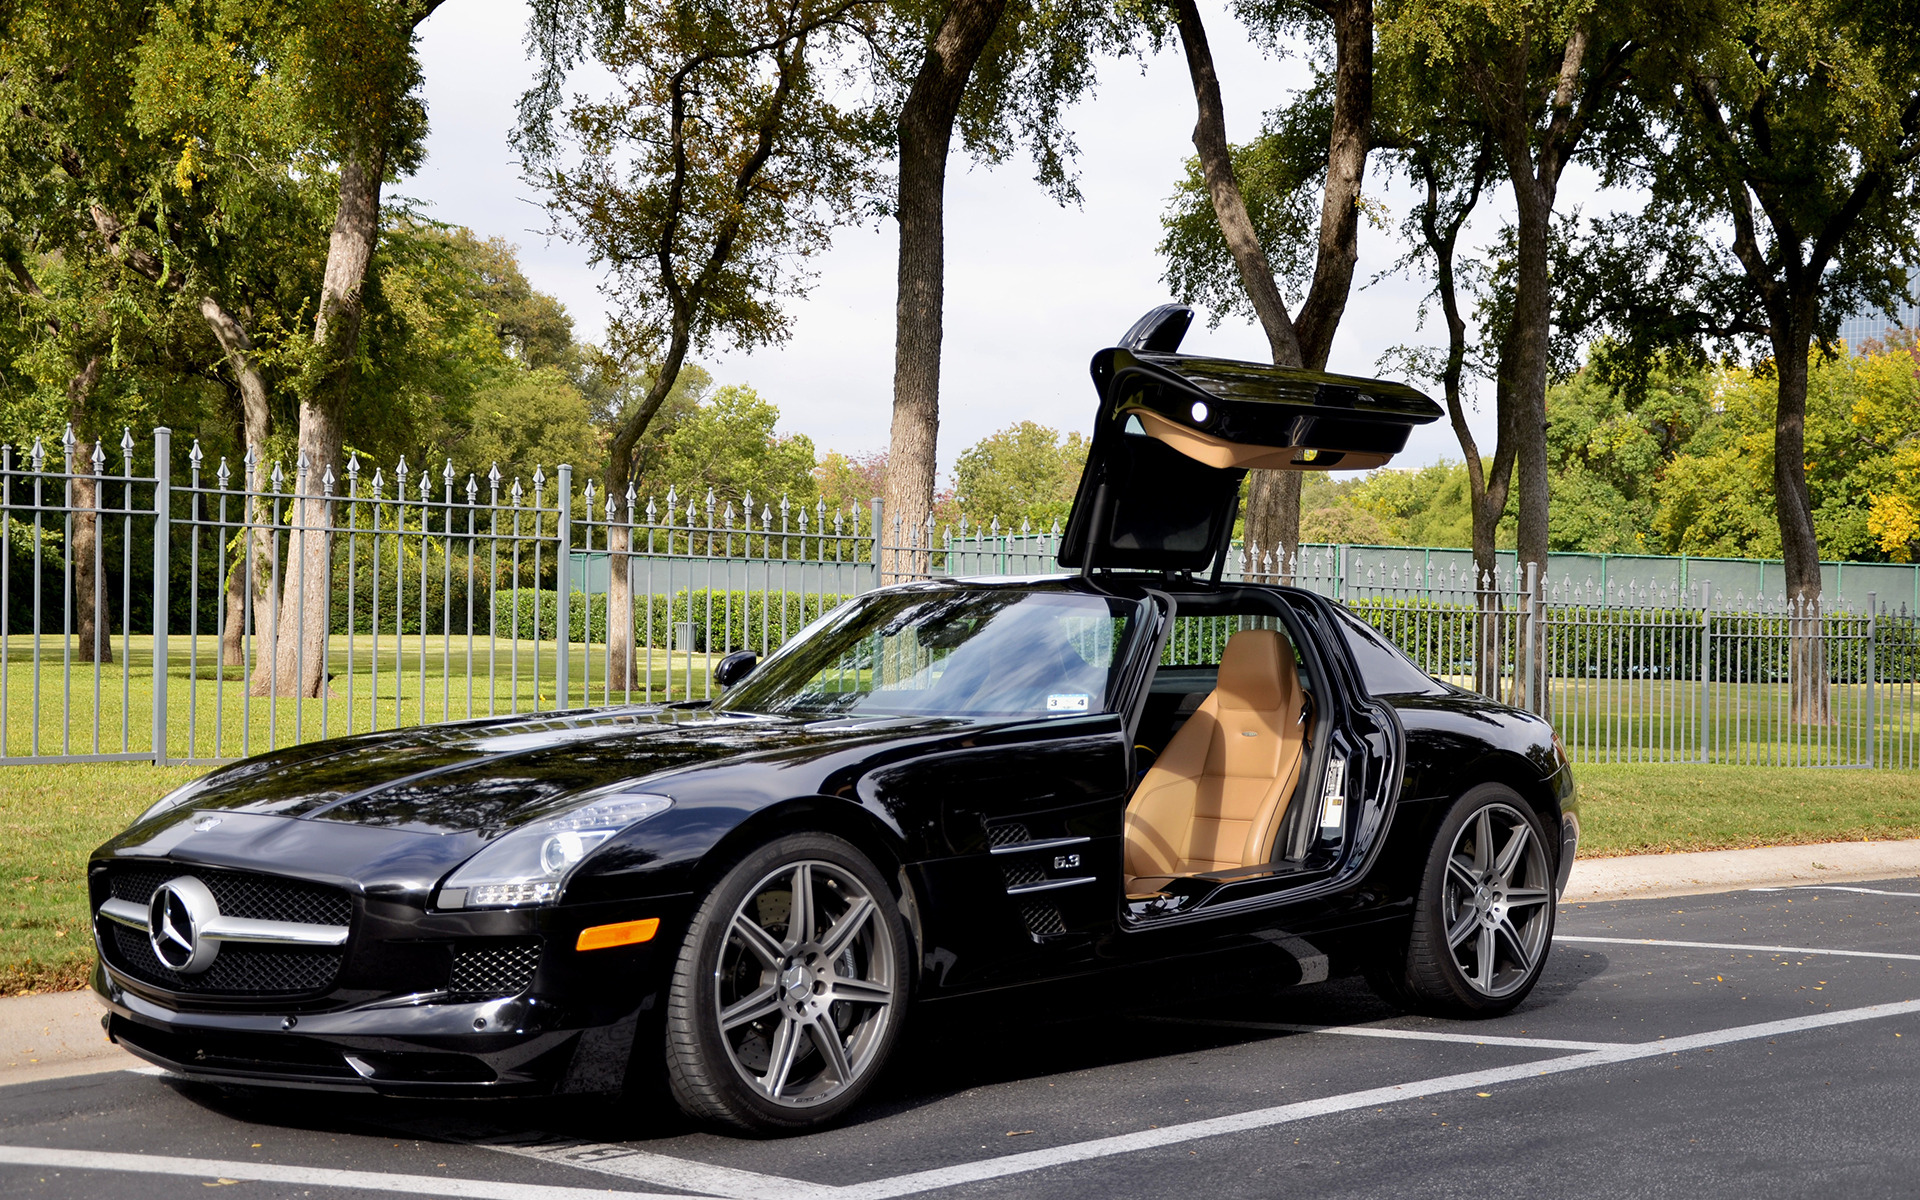 2011 mercedes benz sls amg stock 135995 for sale near. Black Bedroom Furniture Sets. Home Design Ideas